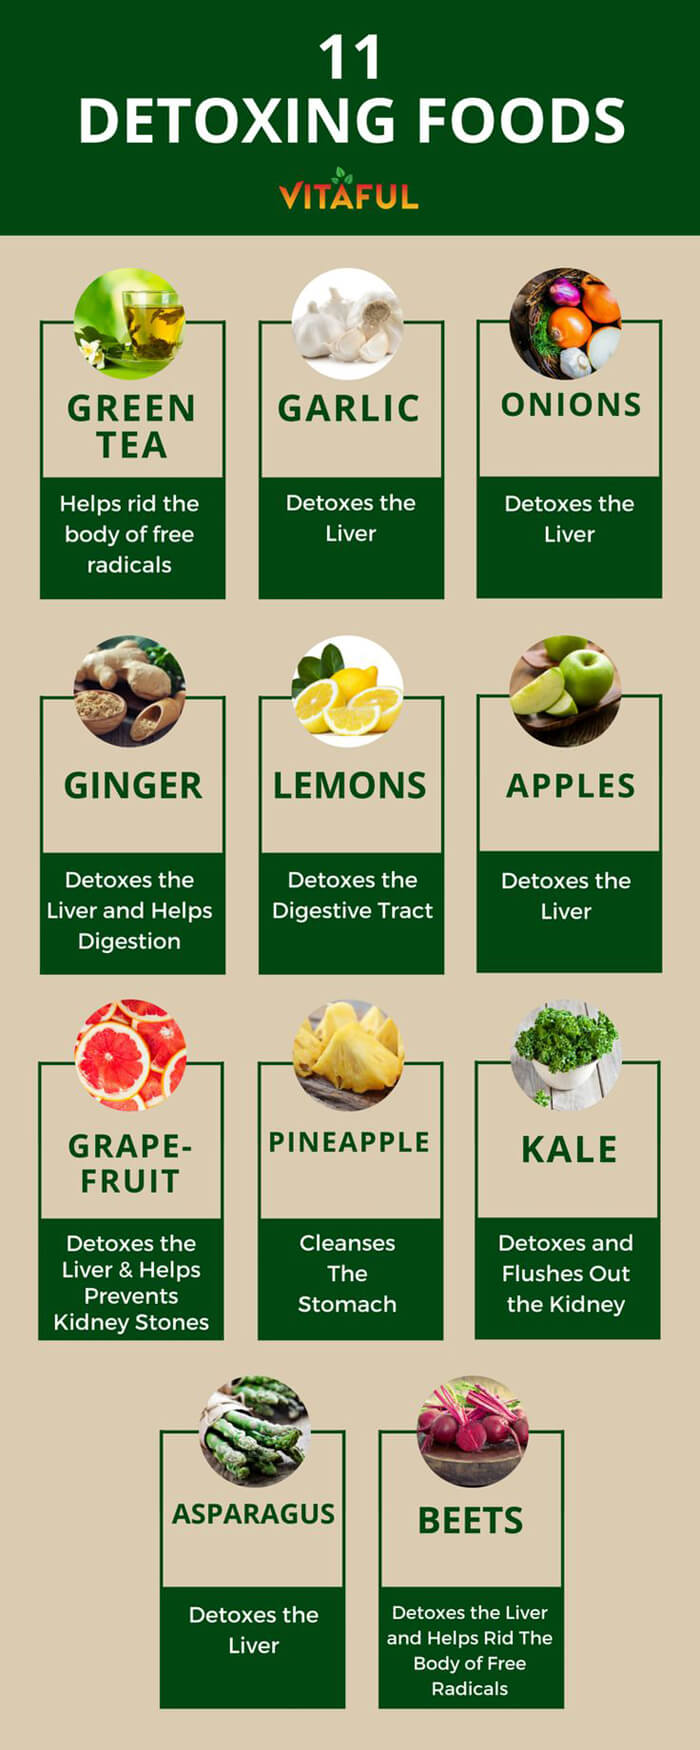 Detox Vs Cleanse Their Differences And Benefits